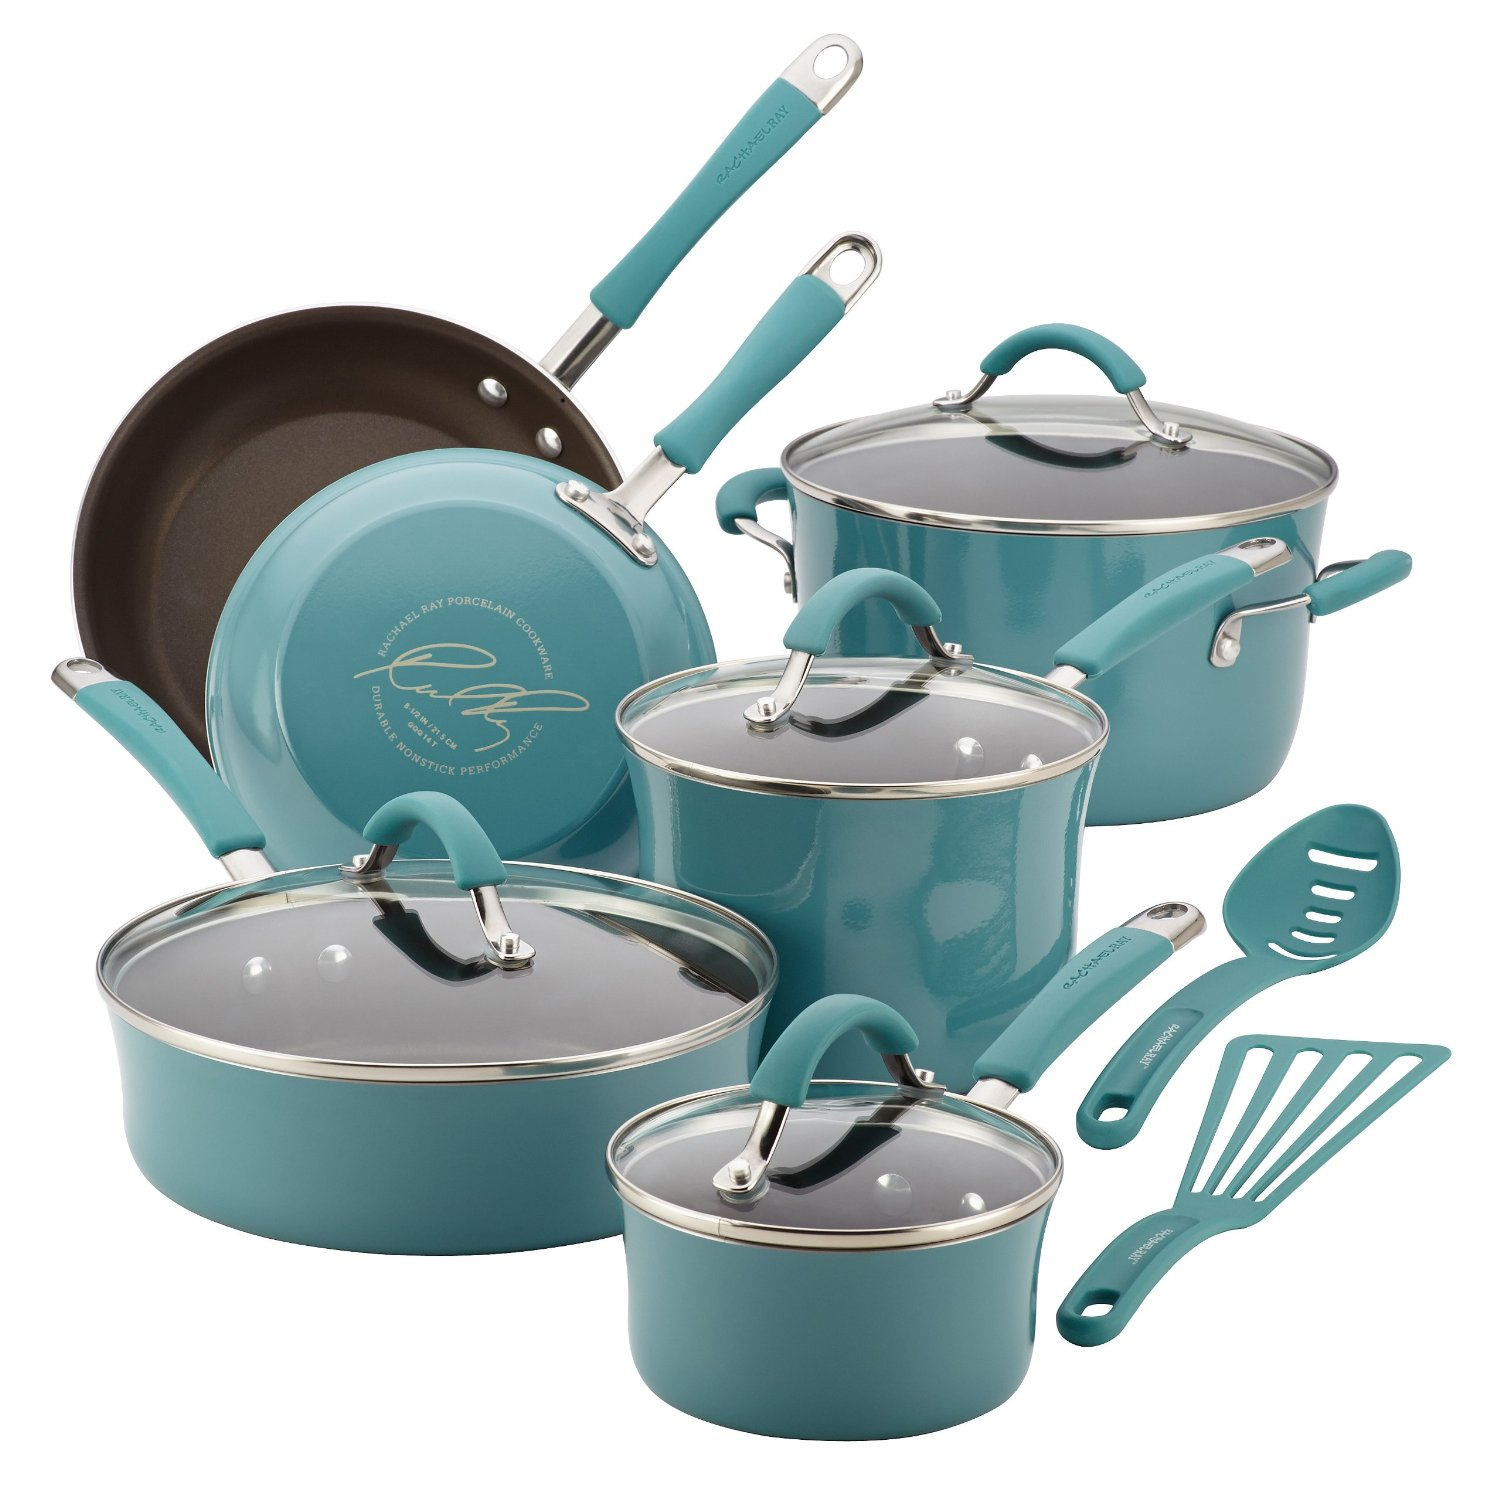 Rachael Ray Cucina Review : Buy This Porcelain Cookware?